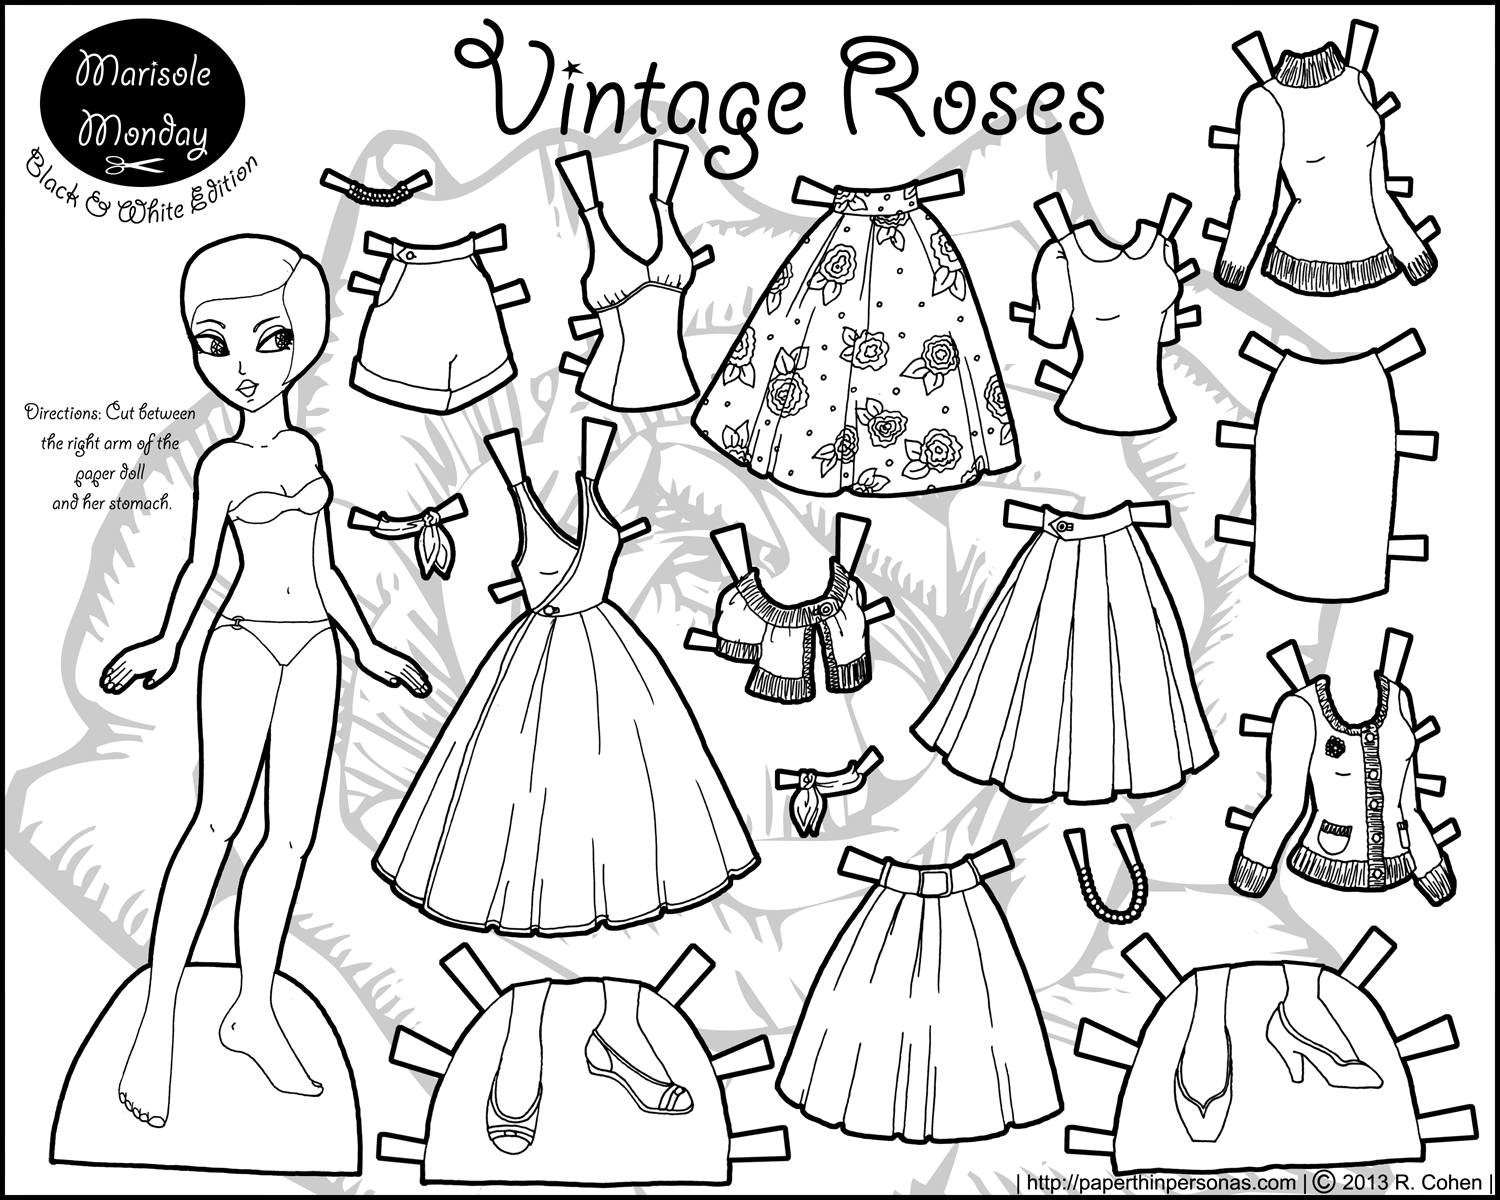 paper doll dress up template paper doll template with images paper doll template dress up paper doll template